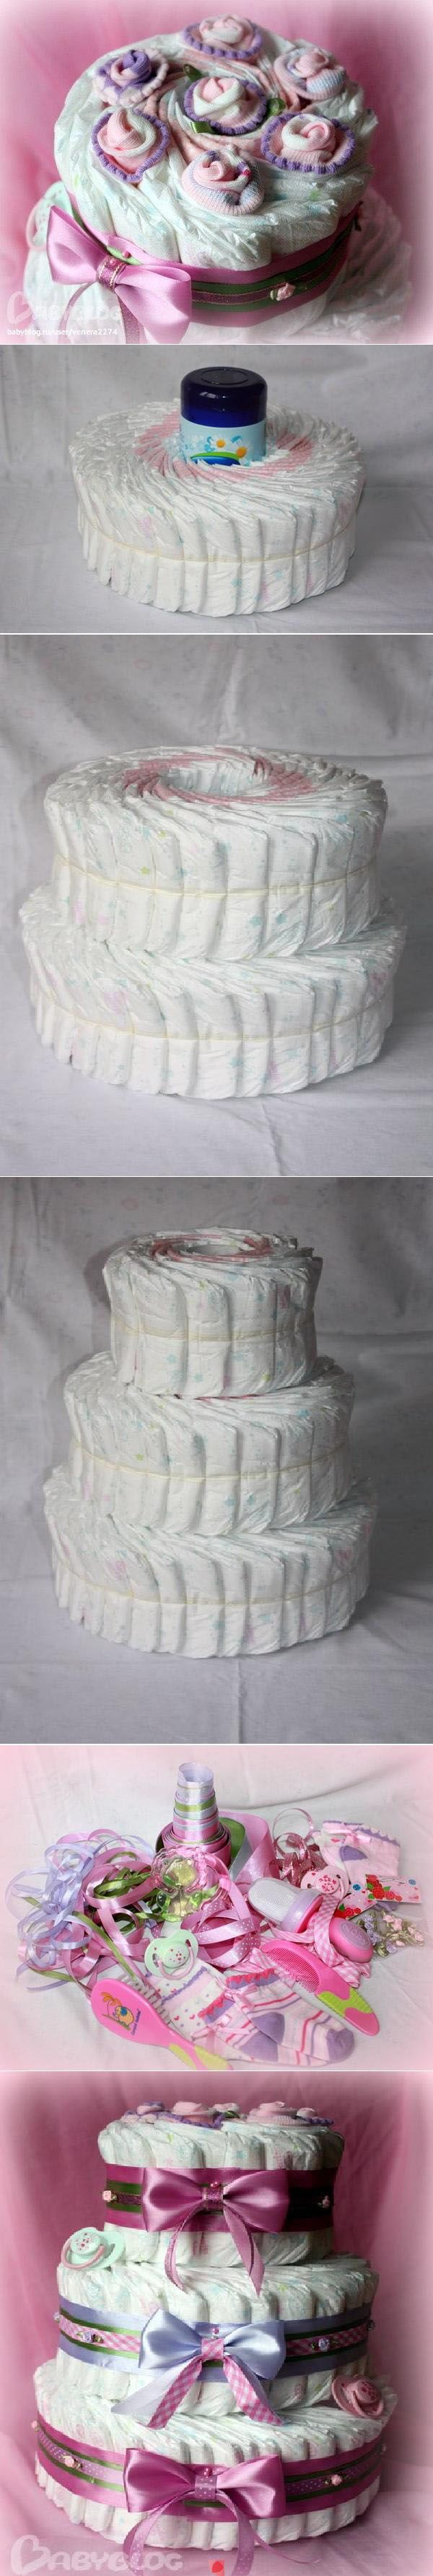 diaper cake- amazing gift for a baby shower